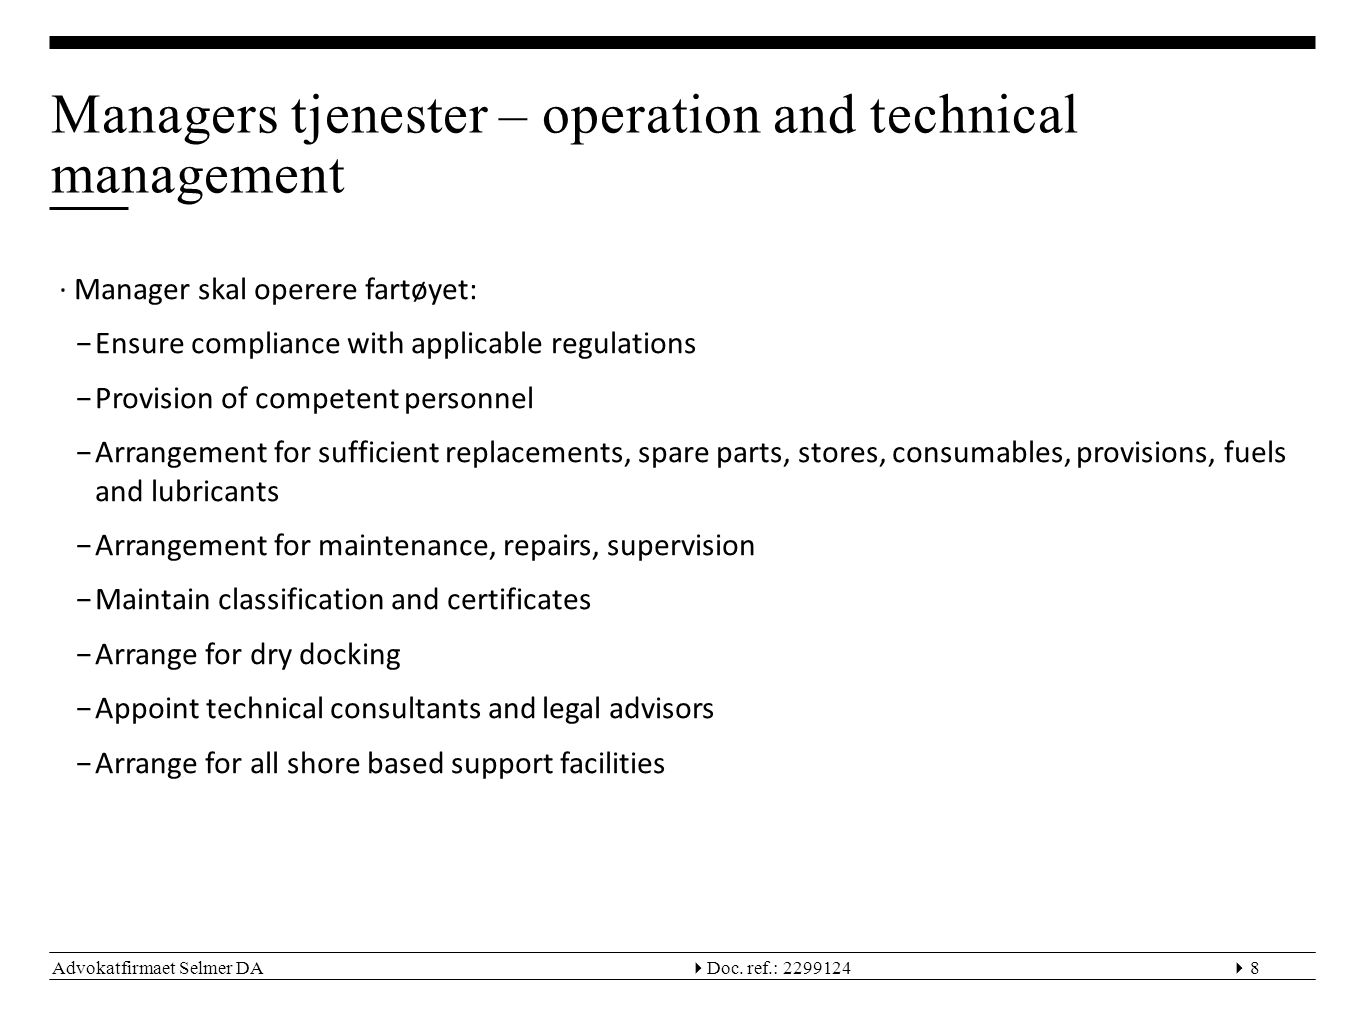 Managers tjenester – operation and technical management